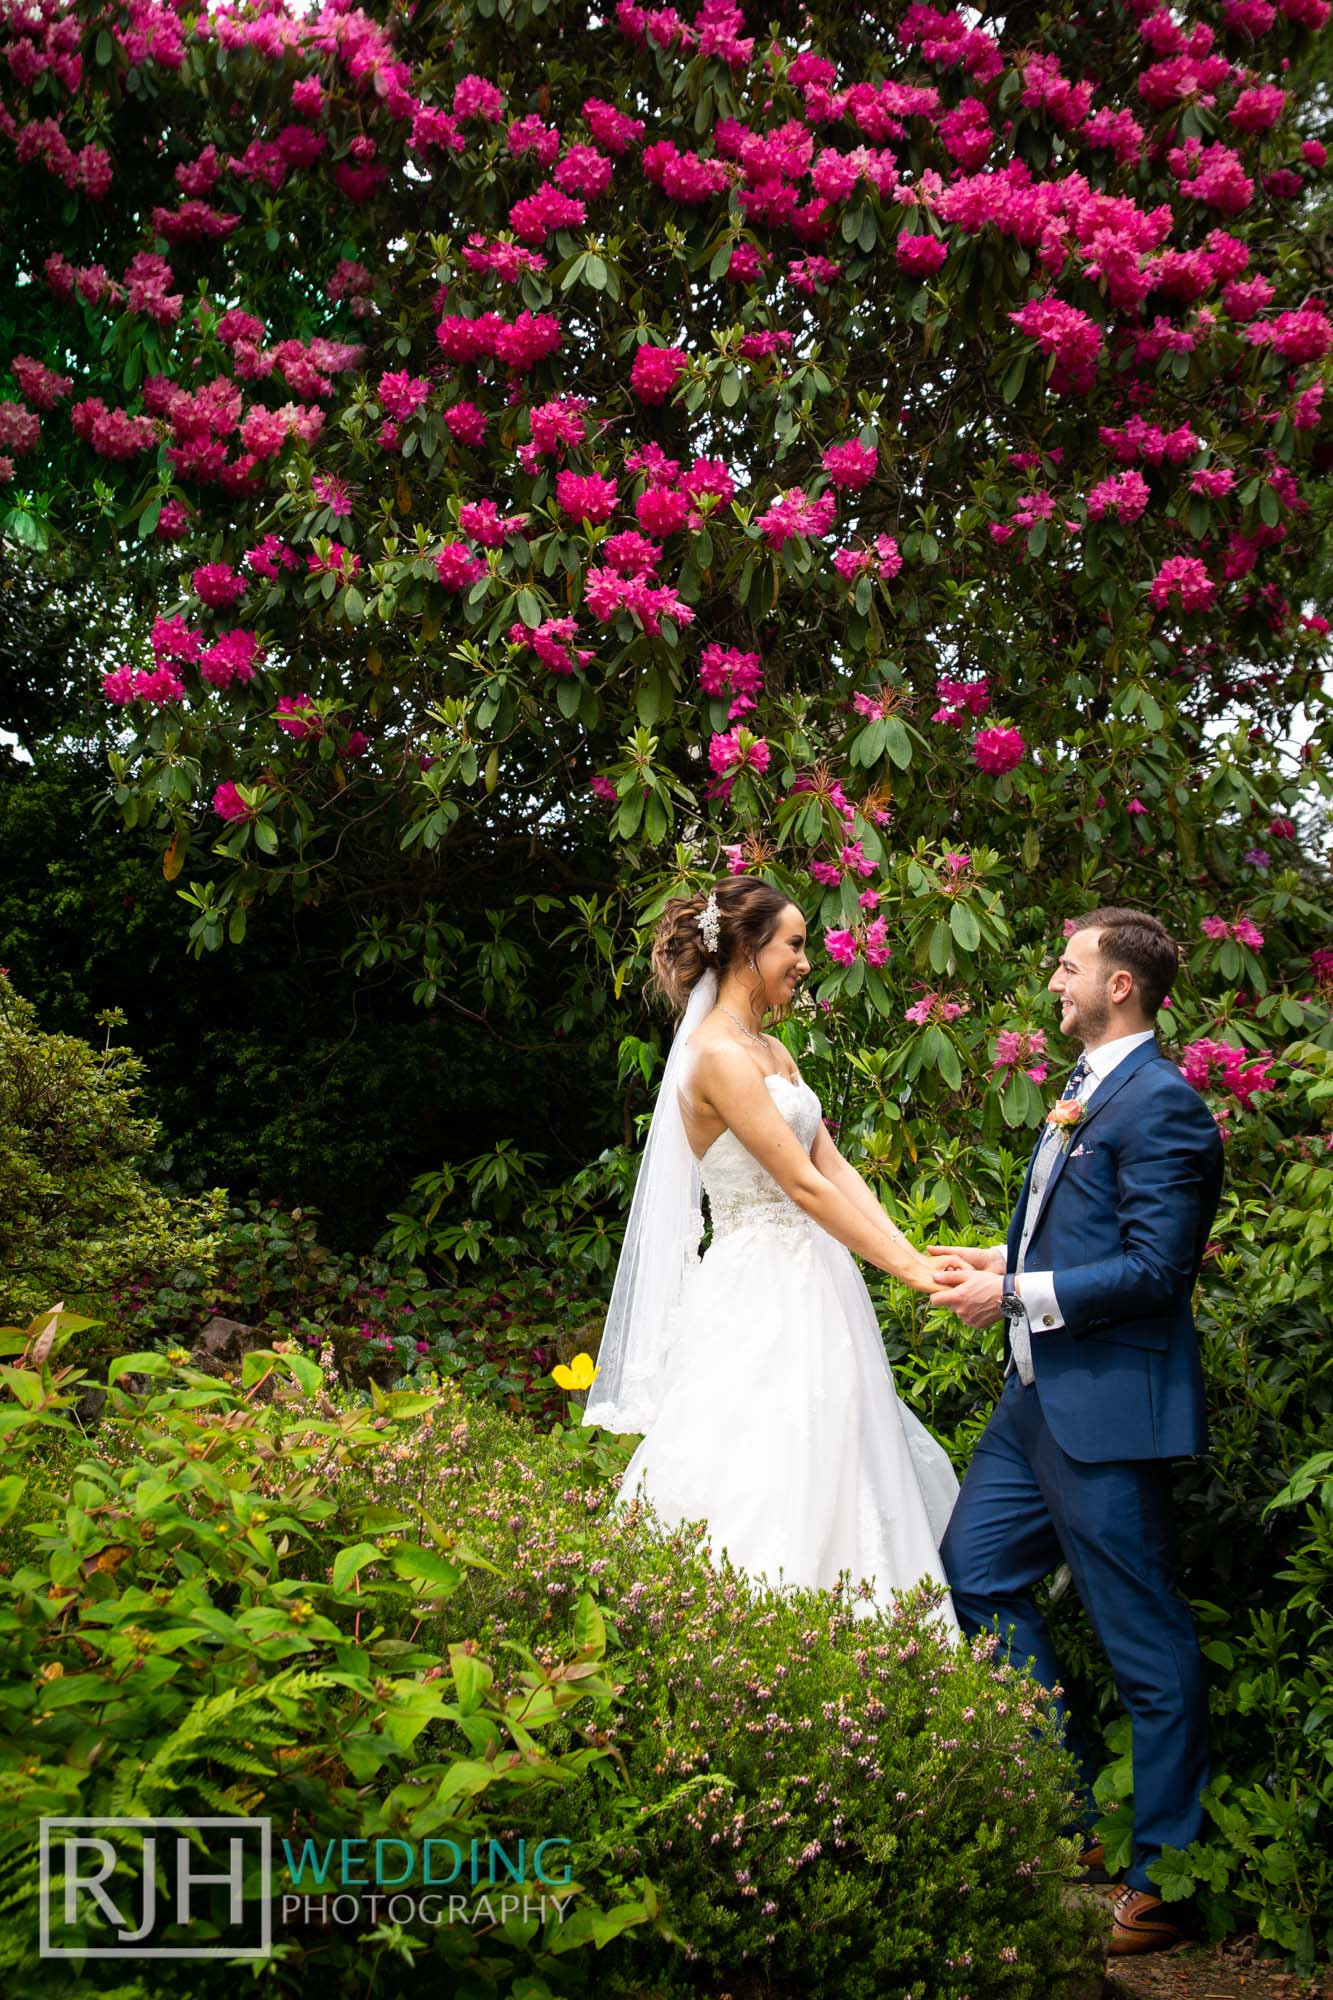 Whirlowbrook Hall Wedding Photography_Jack & Lydia_063_3C2A3399.jpg